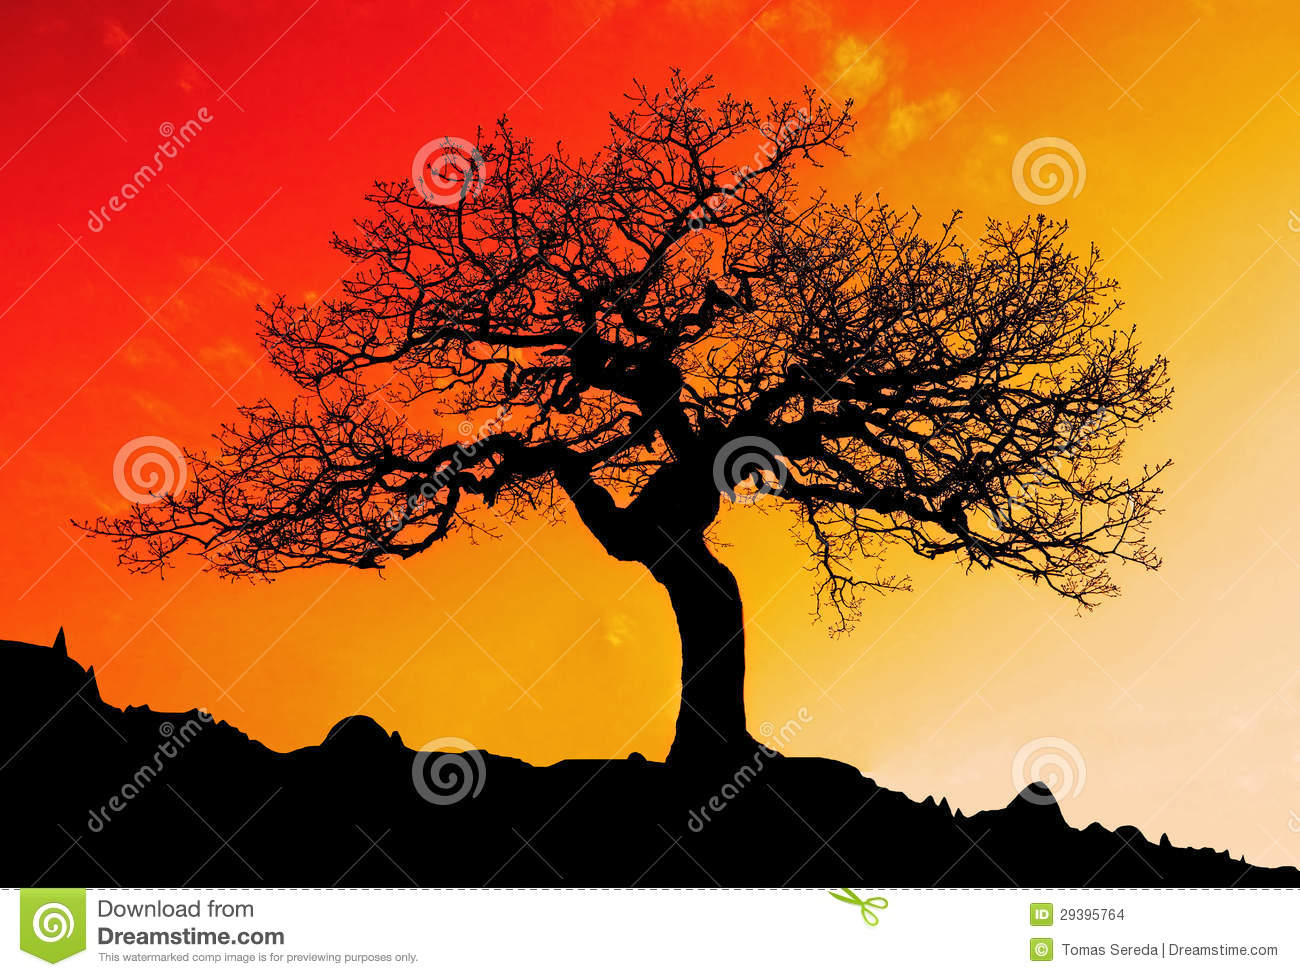 Alone tree with sun and color red orange yellow sky stock - Dreaming about the color red ...